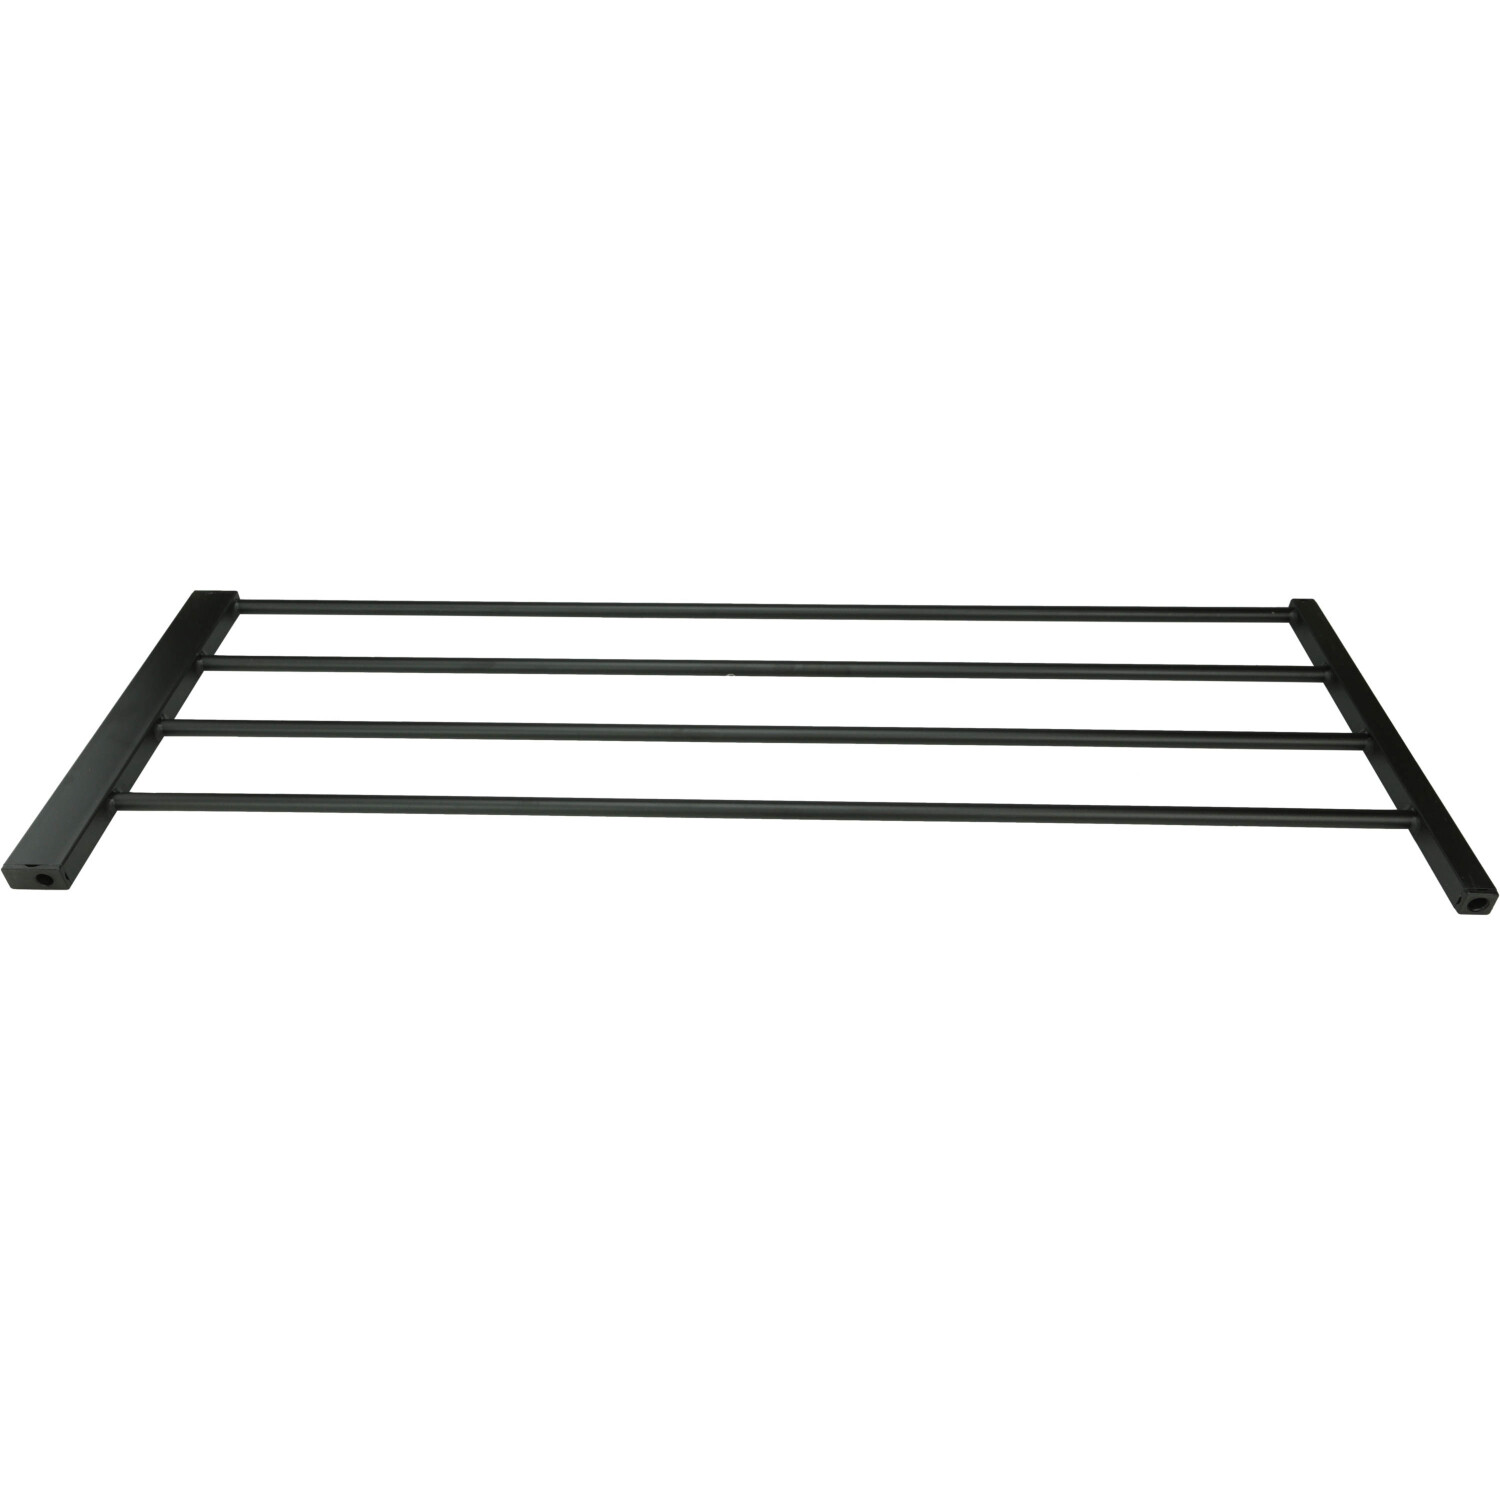 North States Pet Mypet 4 Bar Extension For Tall Petgate Passage Gate 5277